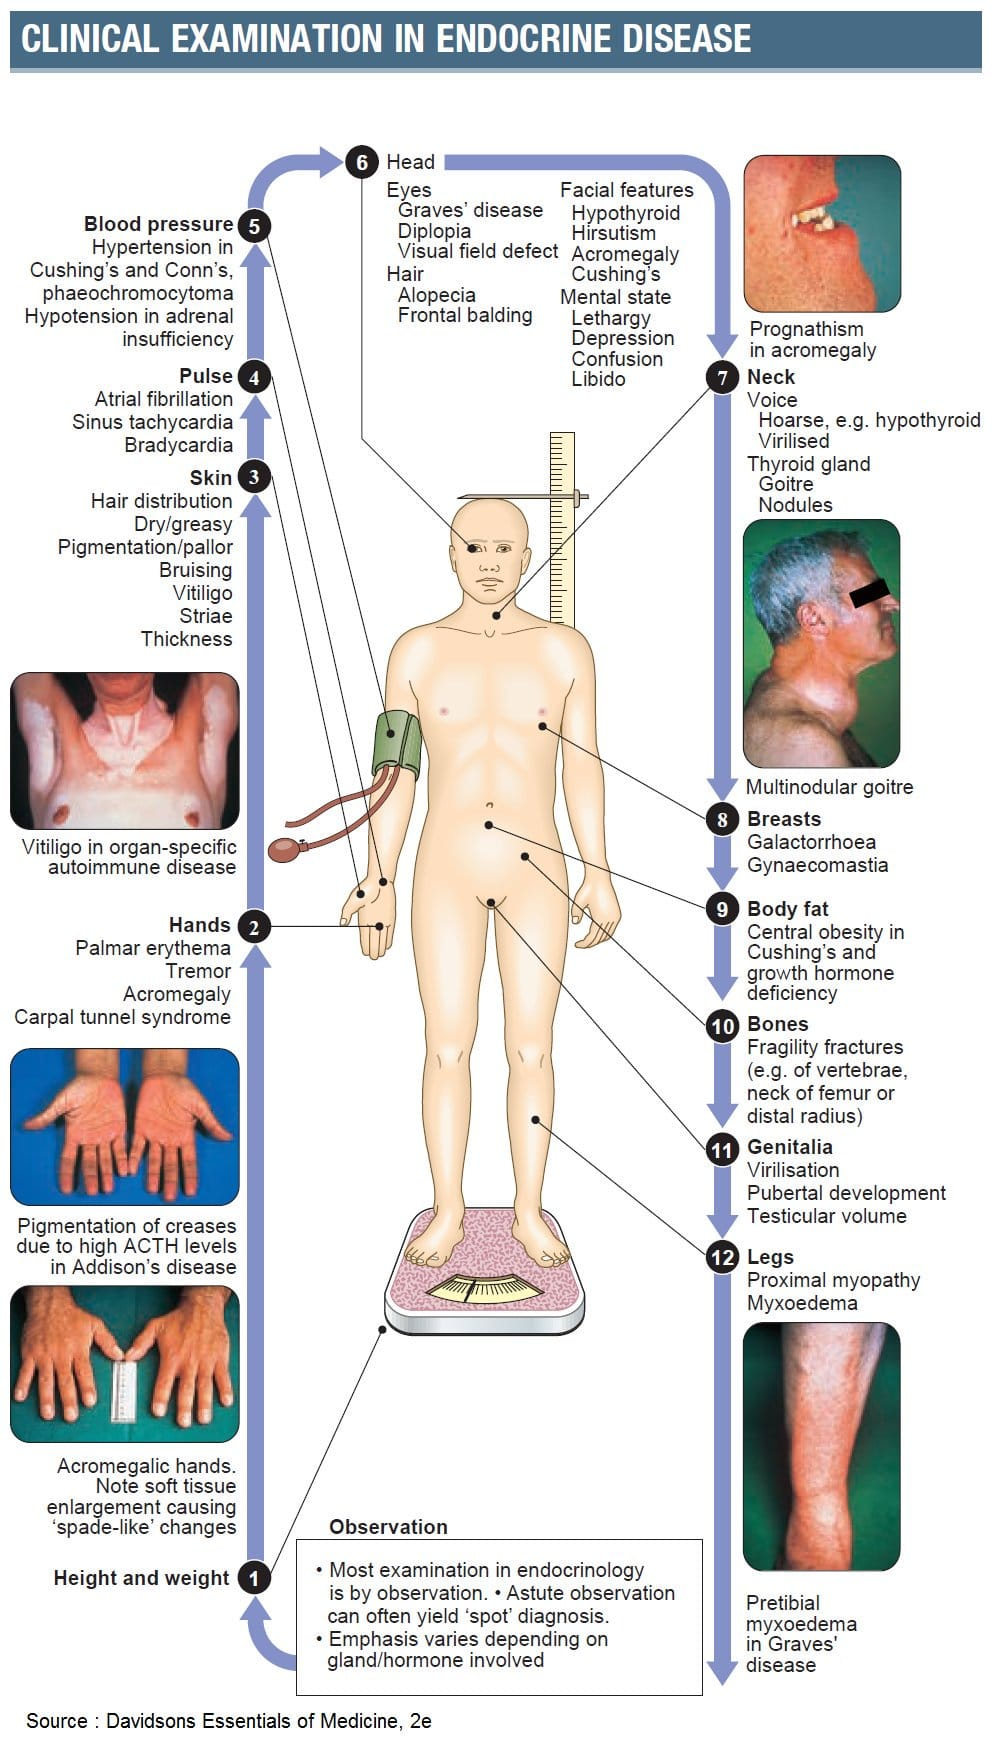 Clinical examination of endocrine system